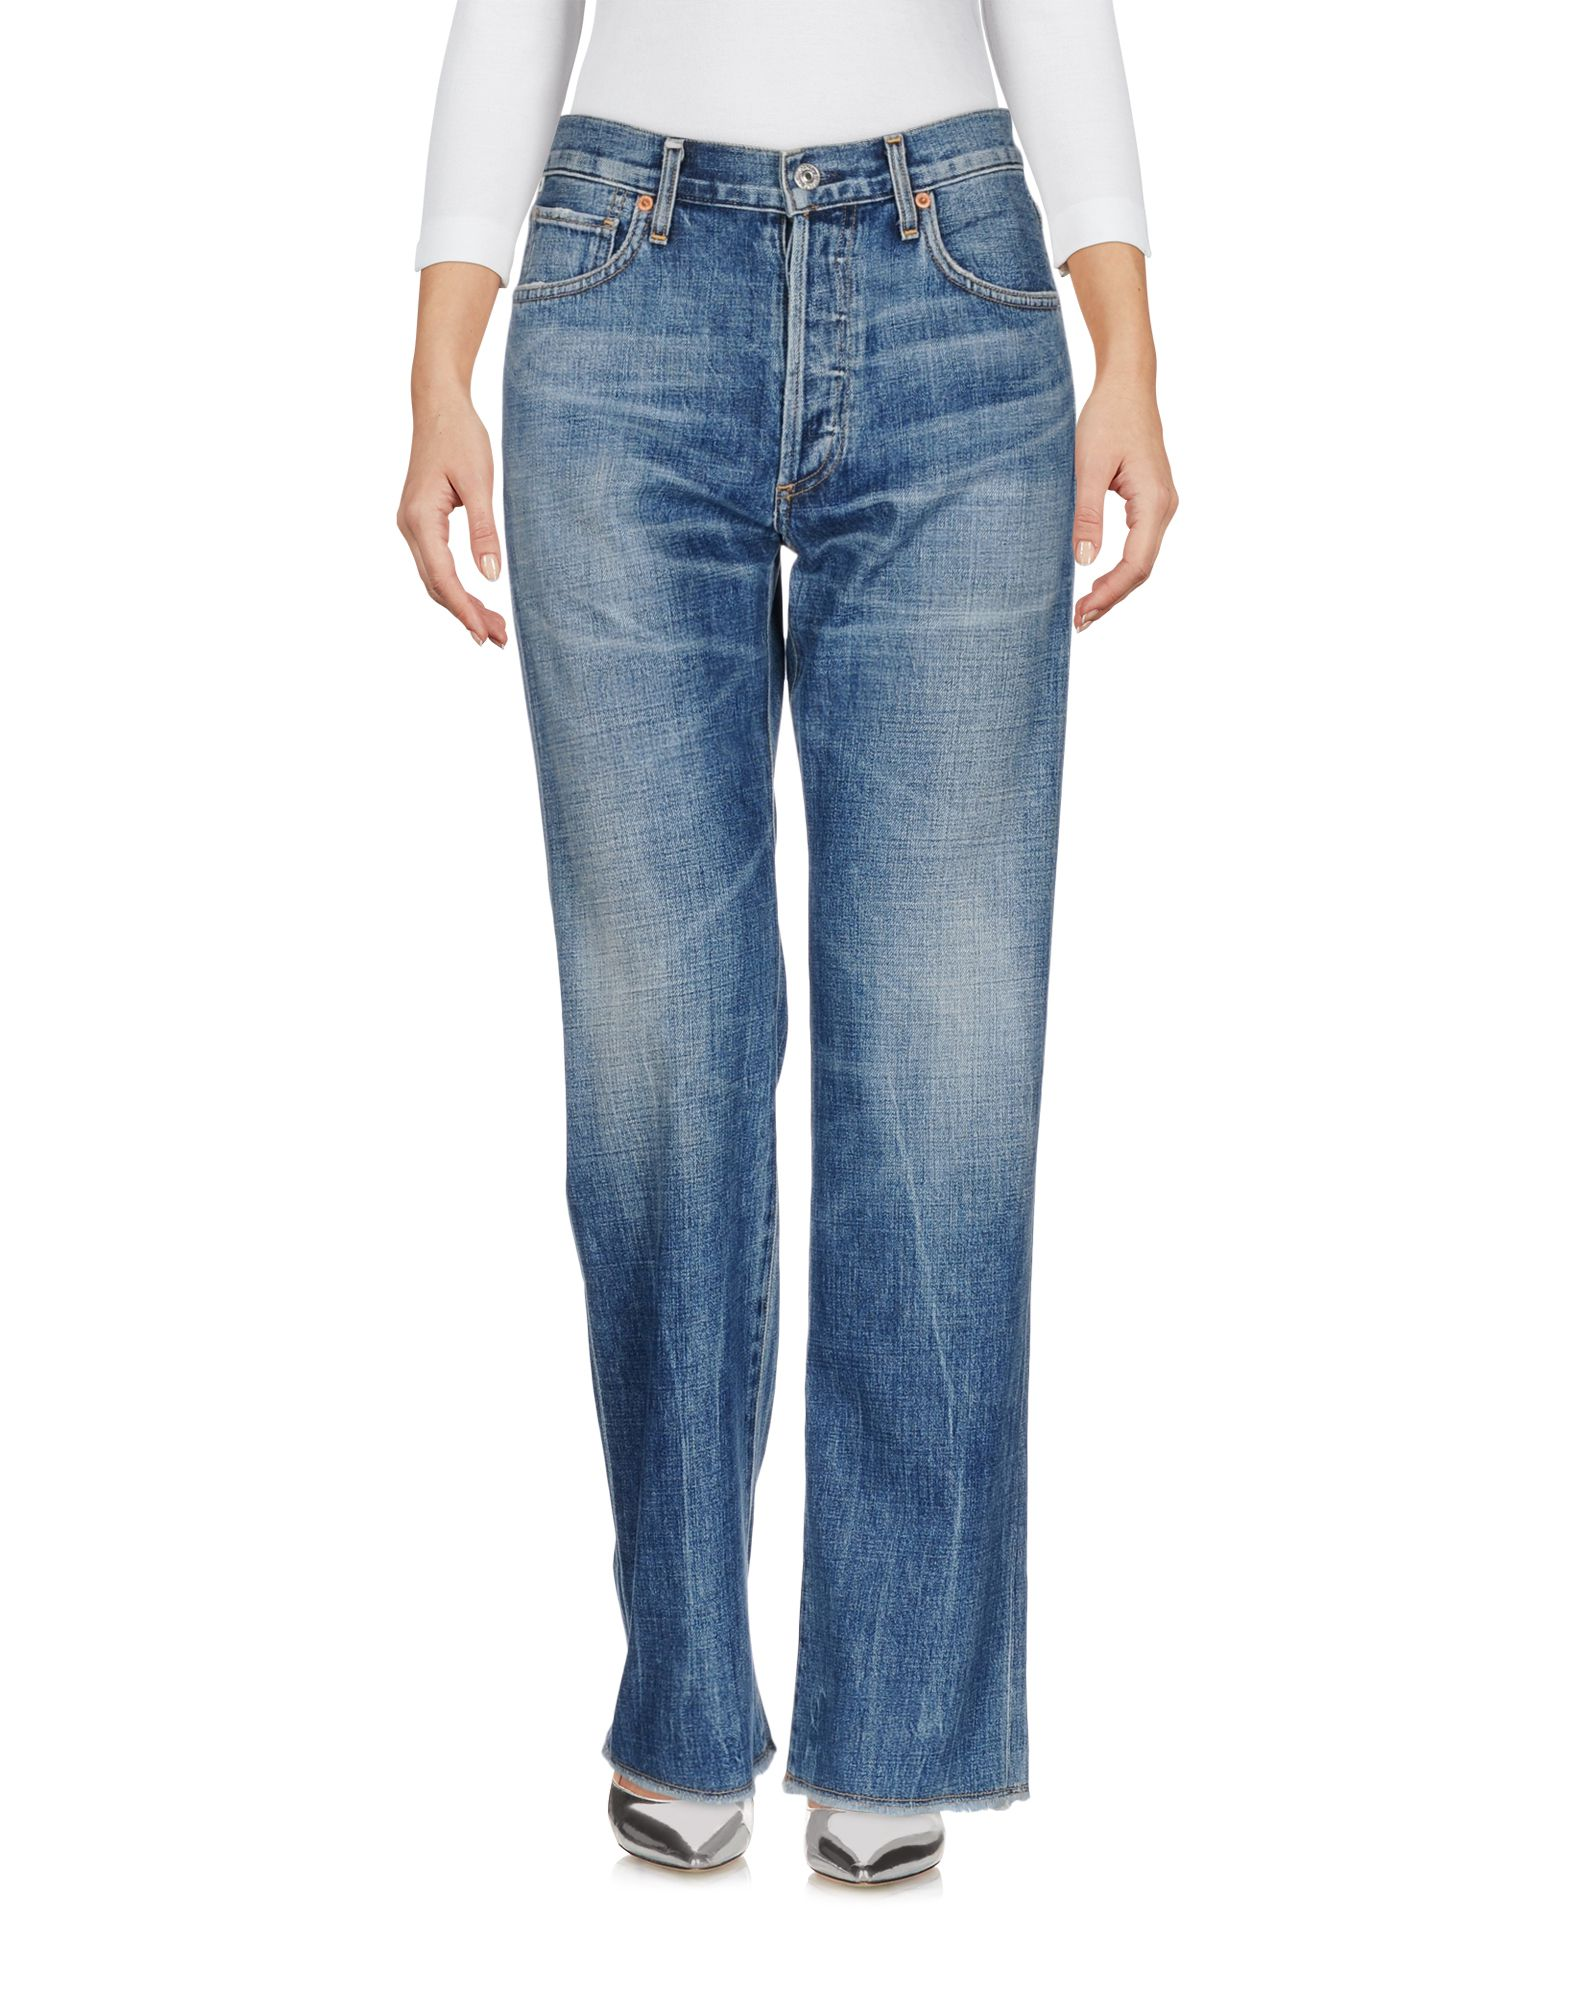 Pantaloni Jeans Citizens Of Humanity Donna - Acquista online su hp7tpzPR